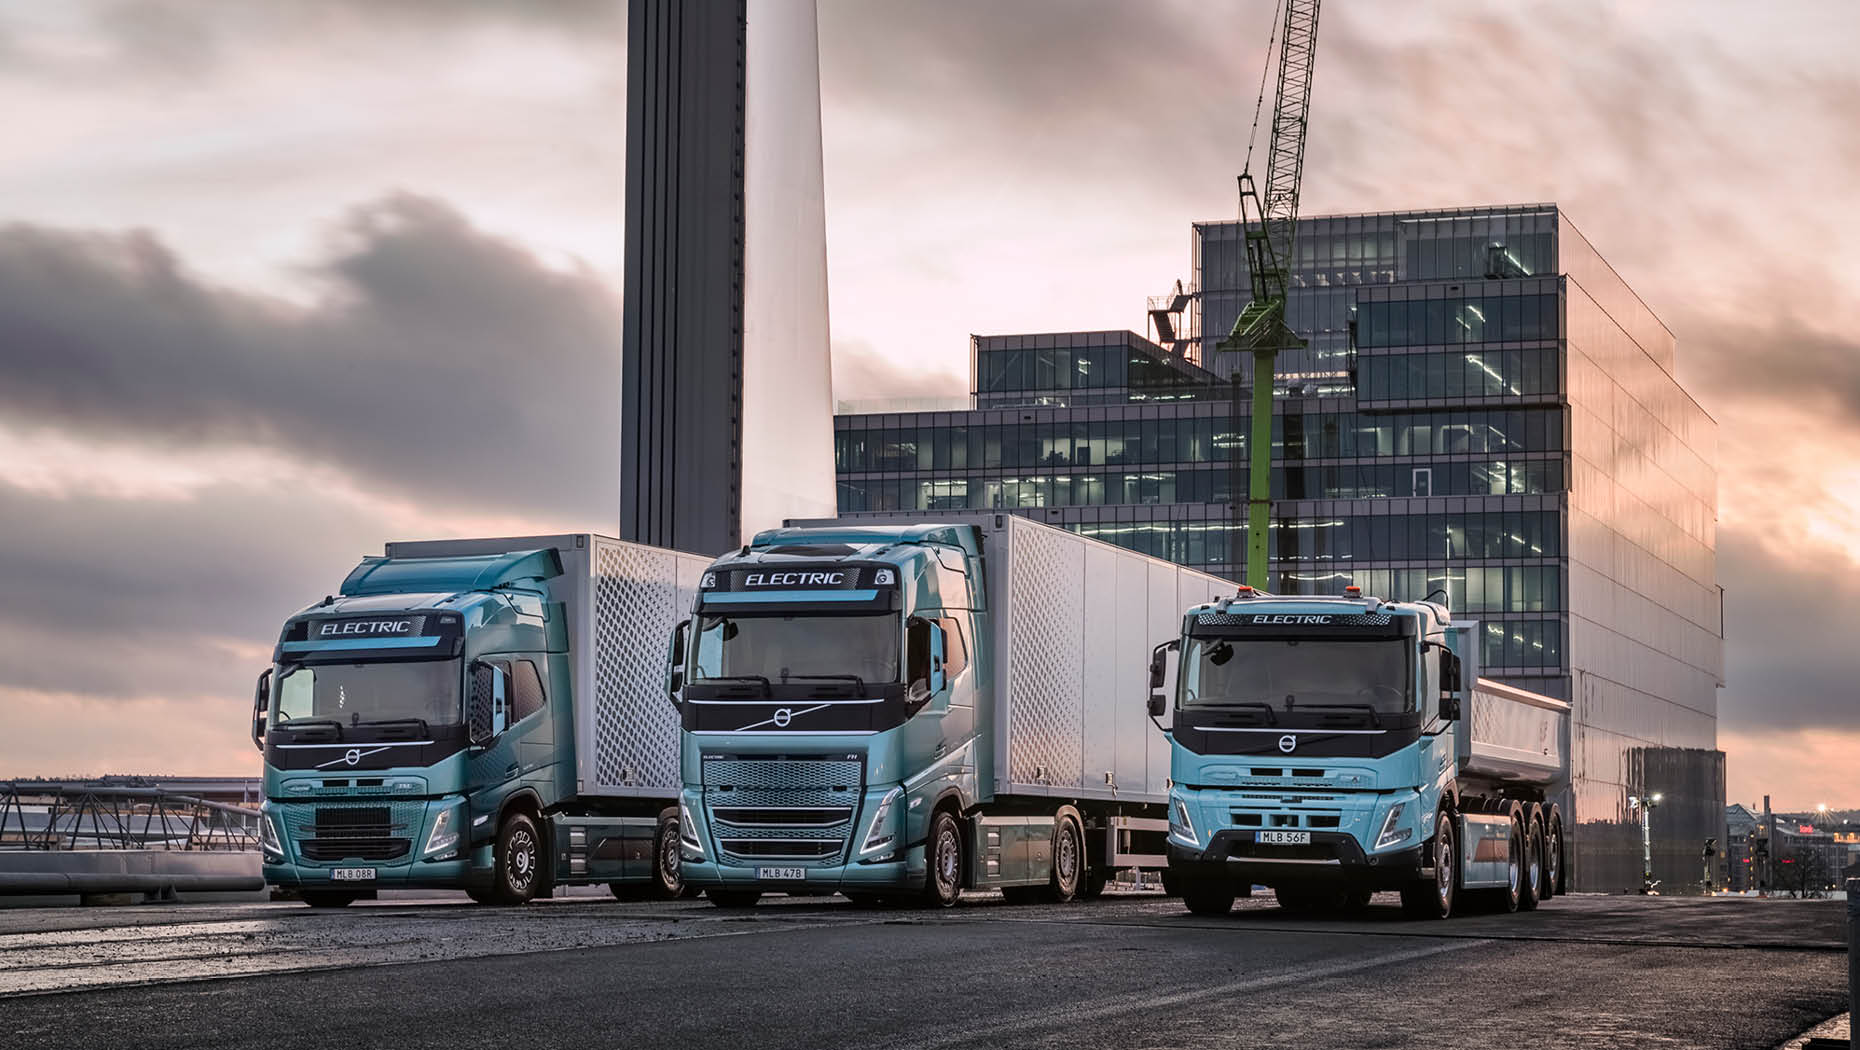 image-1860x1050-volvo-trucks-electromobility-goods-transport